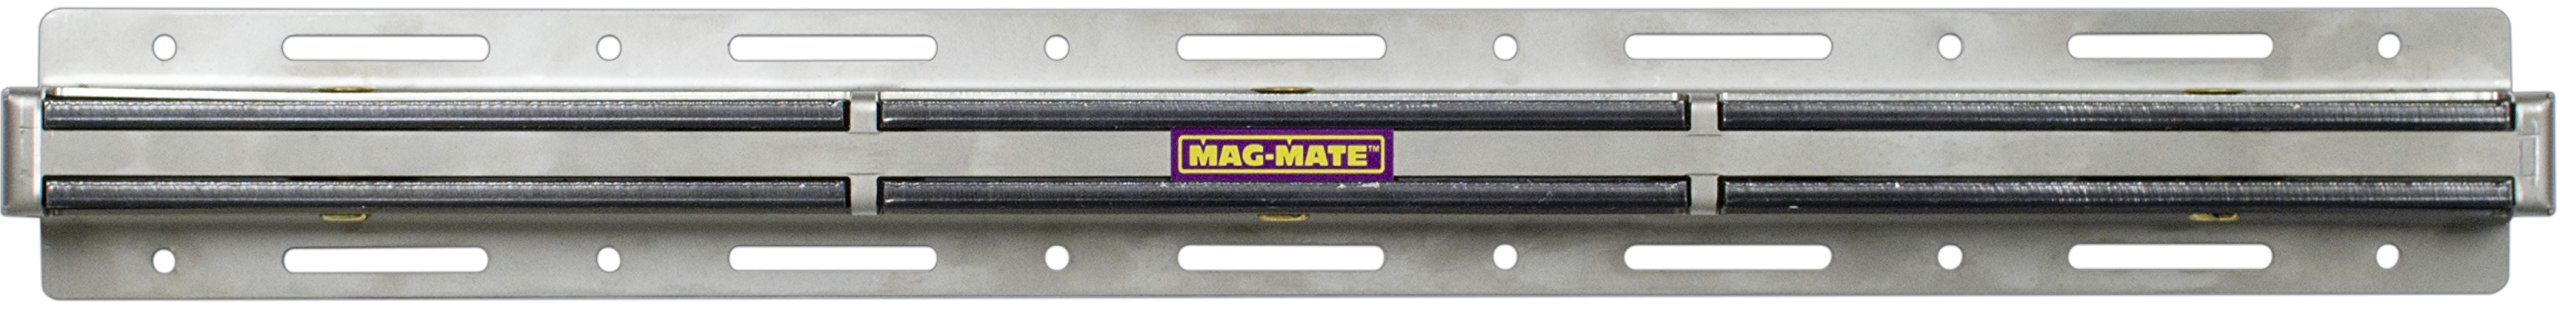 MAG-MATE TH1800 Industrial Strength Magnetic Tool Holder, 18''